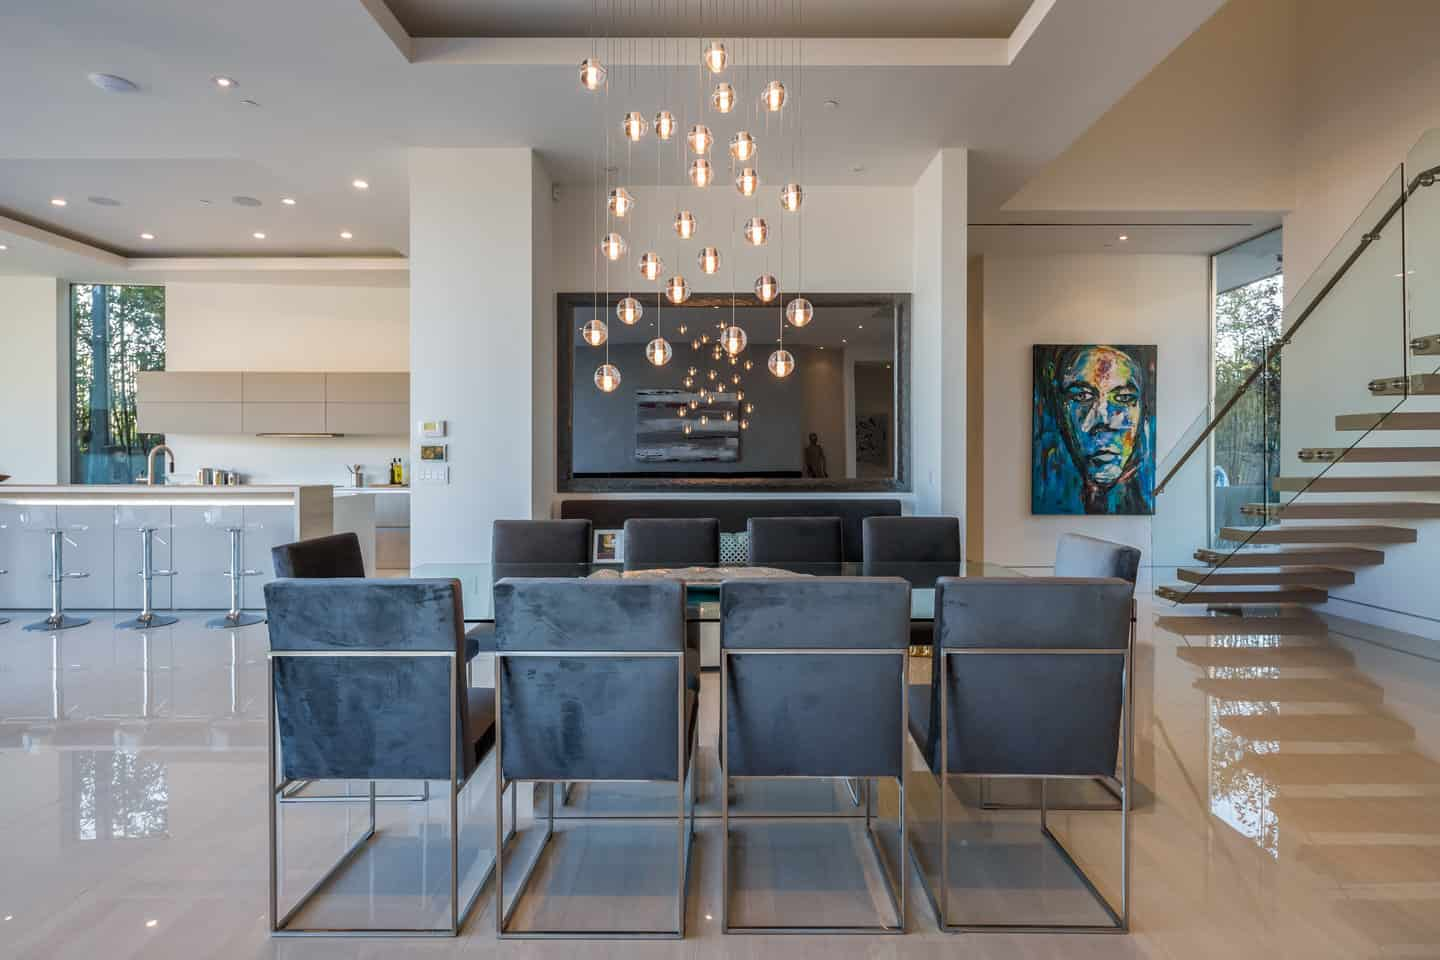 Architecture-Contemporary-Residence-Noesis Group-06-1 Kindesign